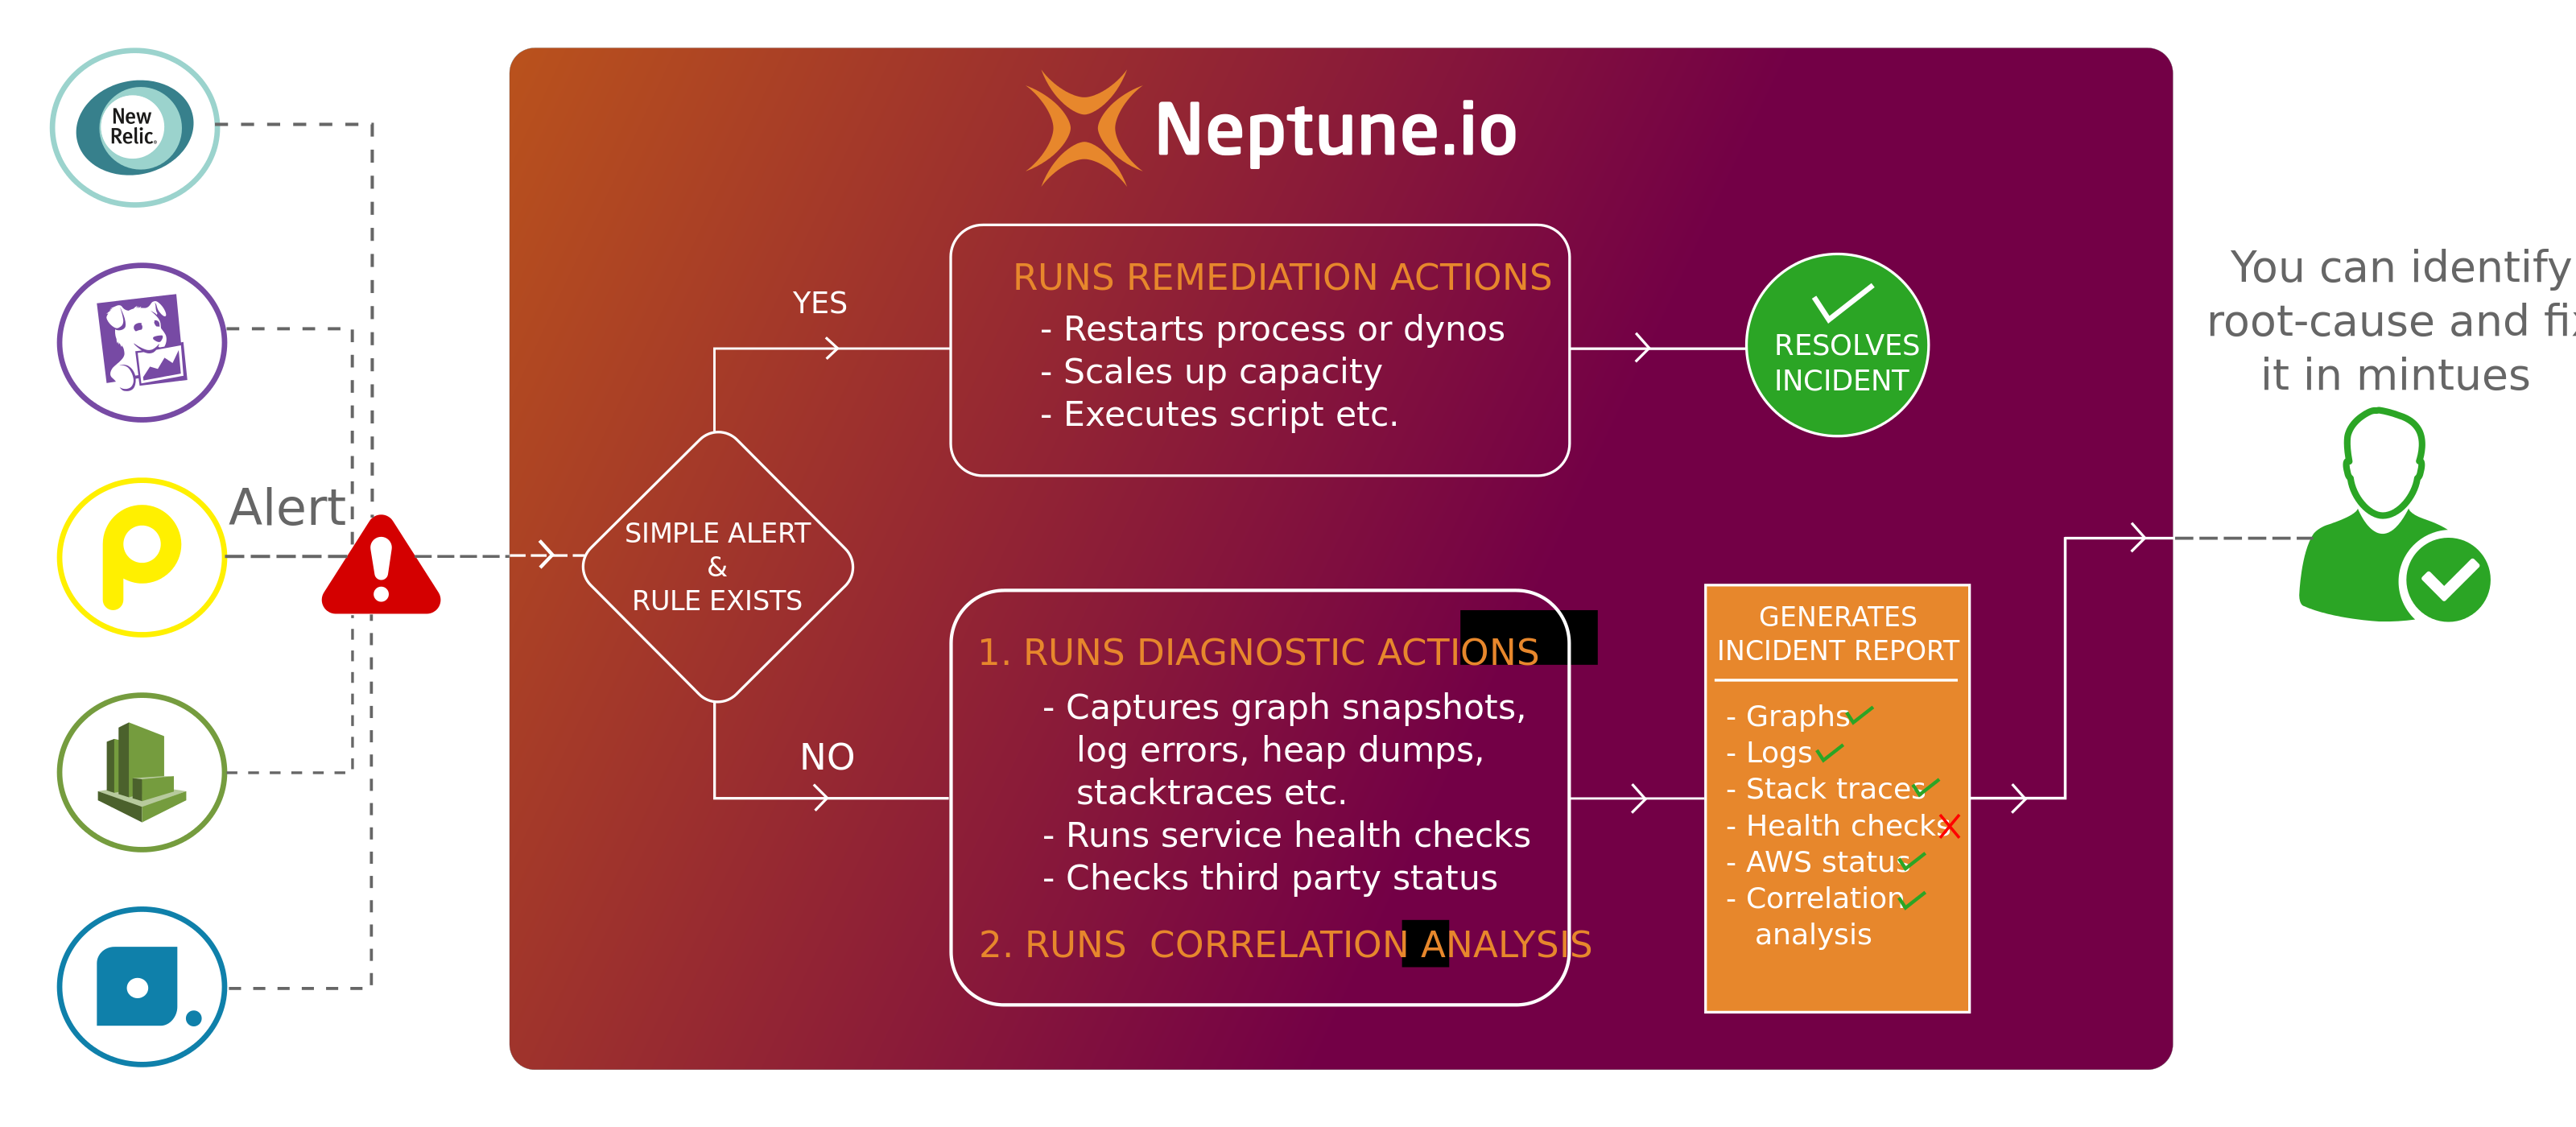 neptune_overview.png